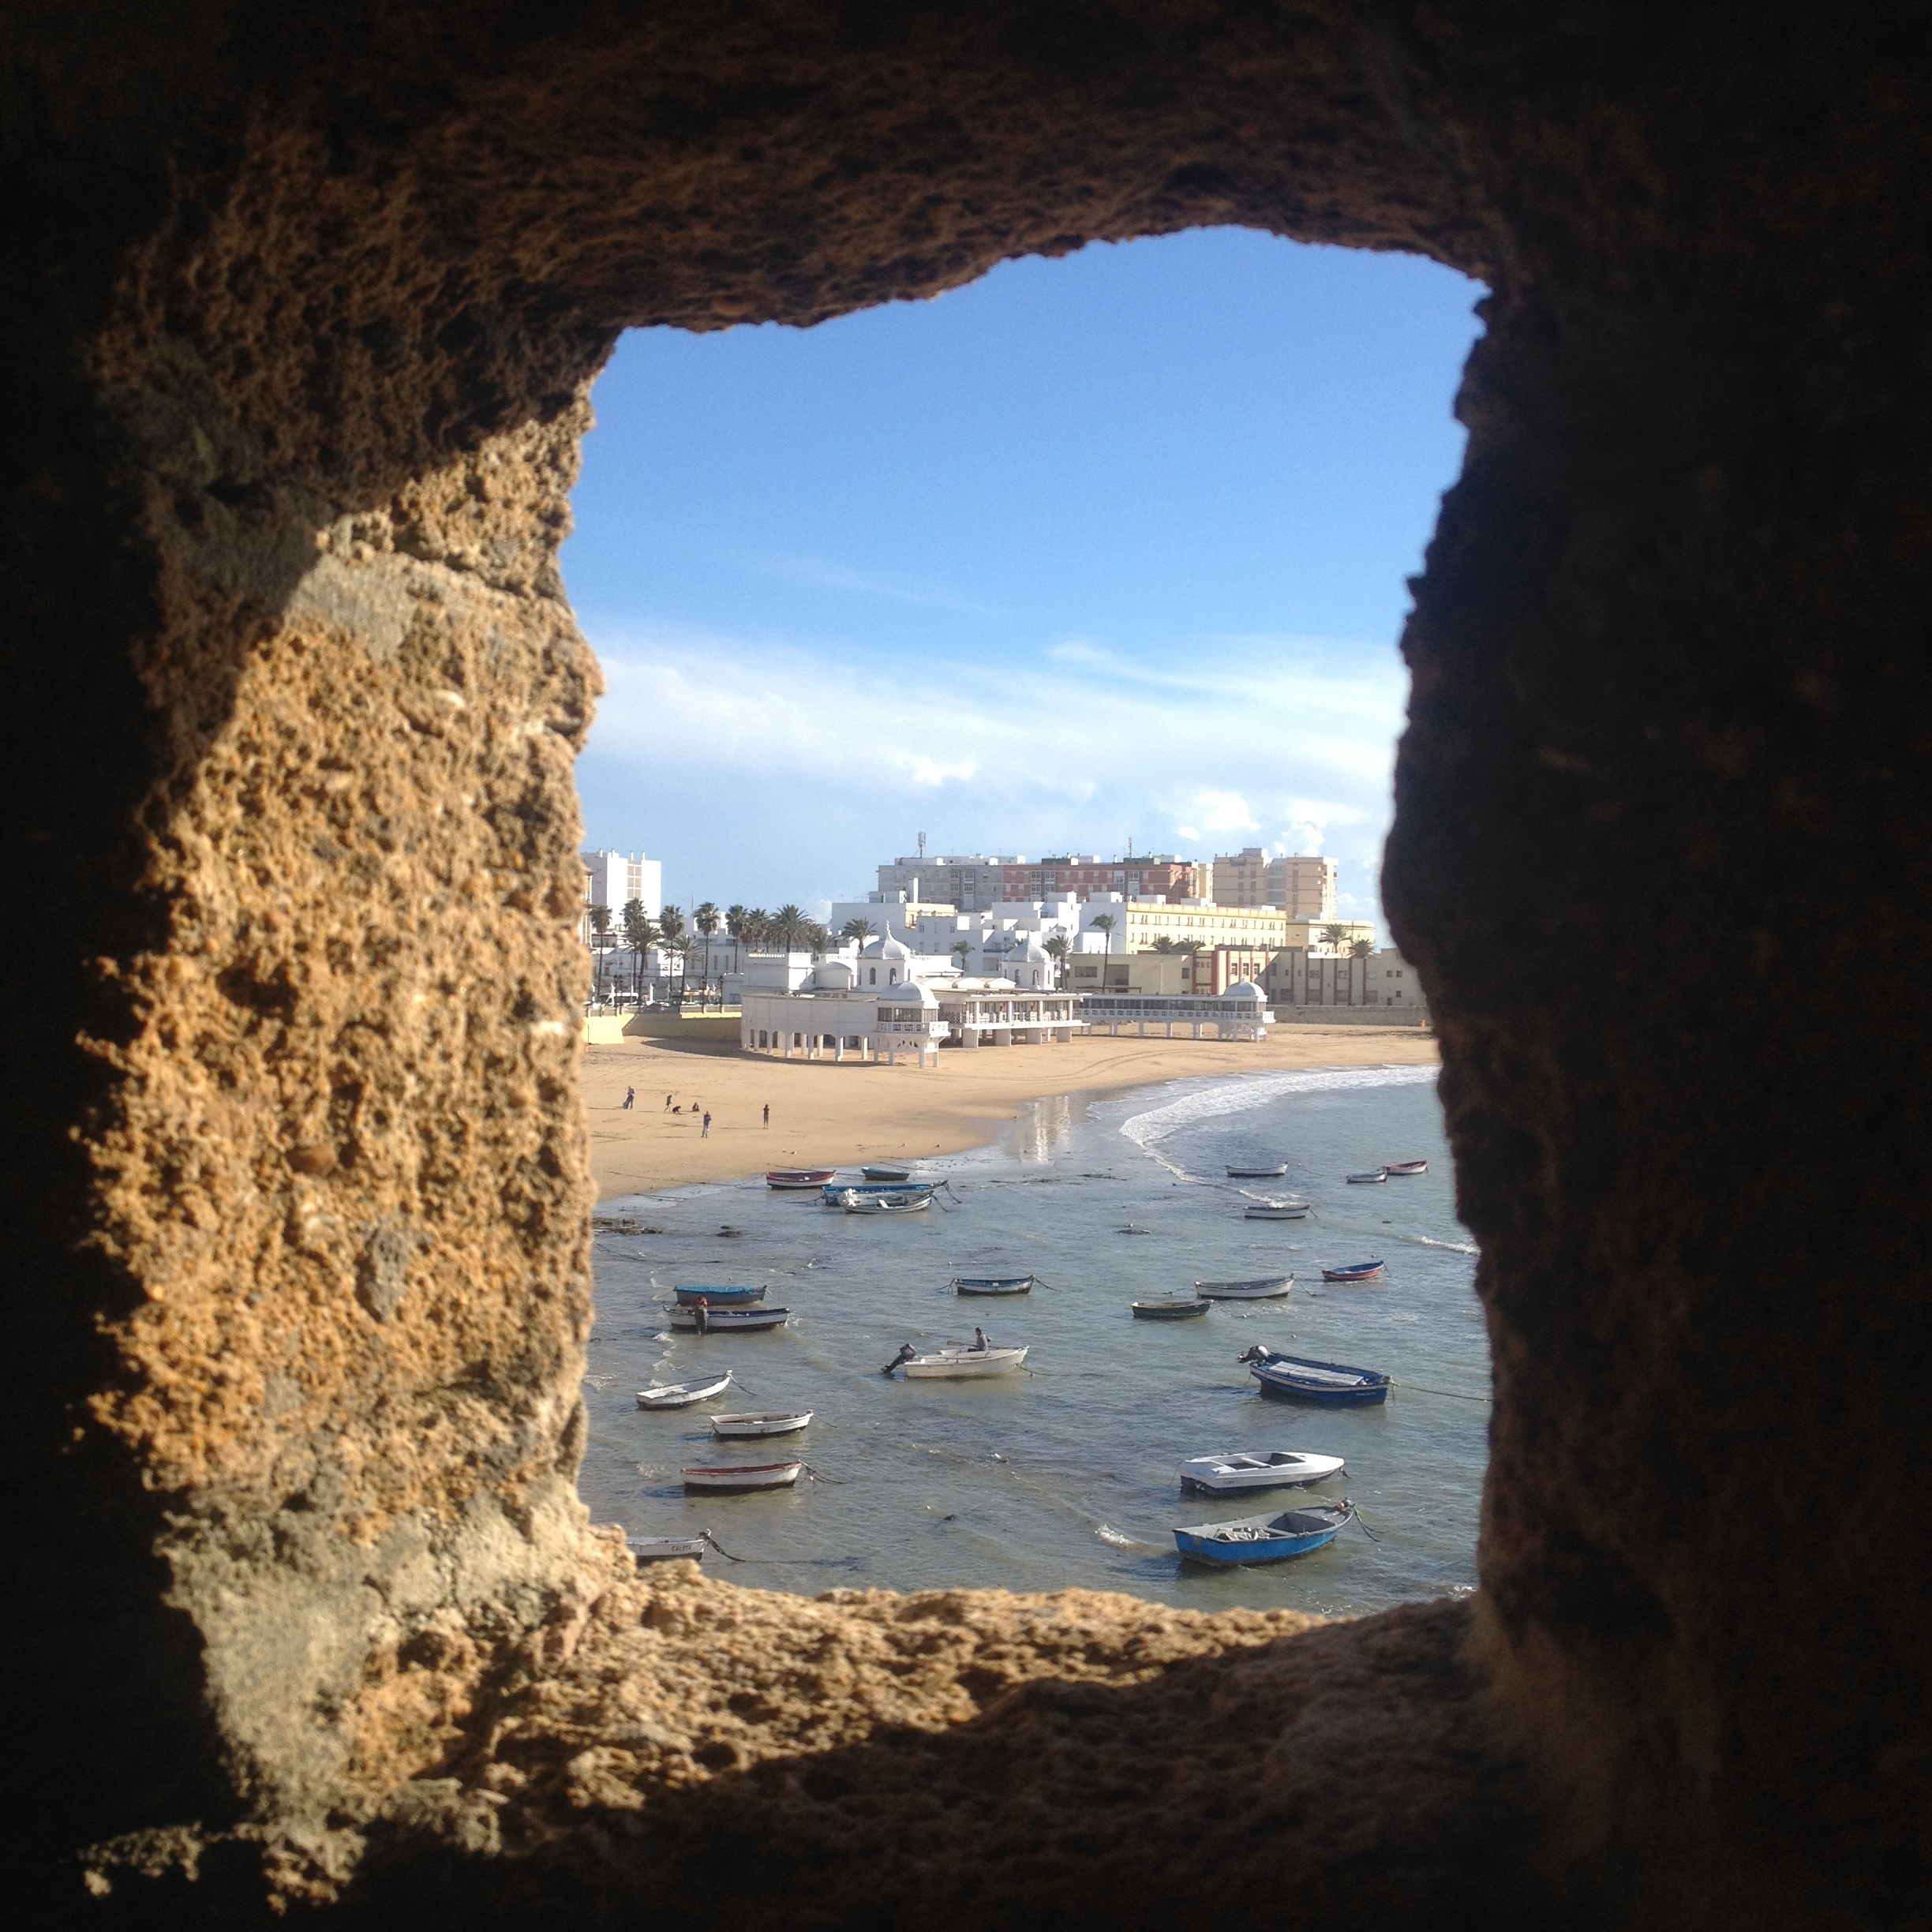 View through a castle window from Castillo Santa Catalina